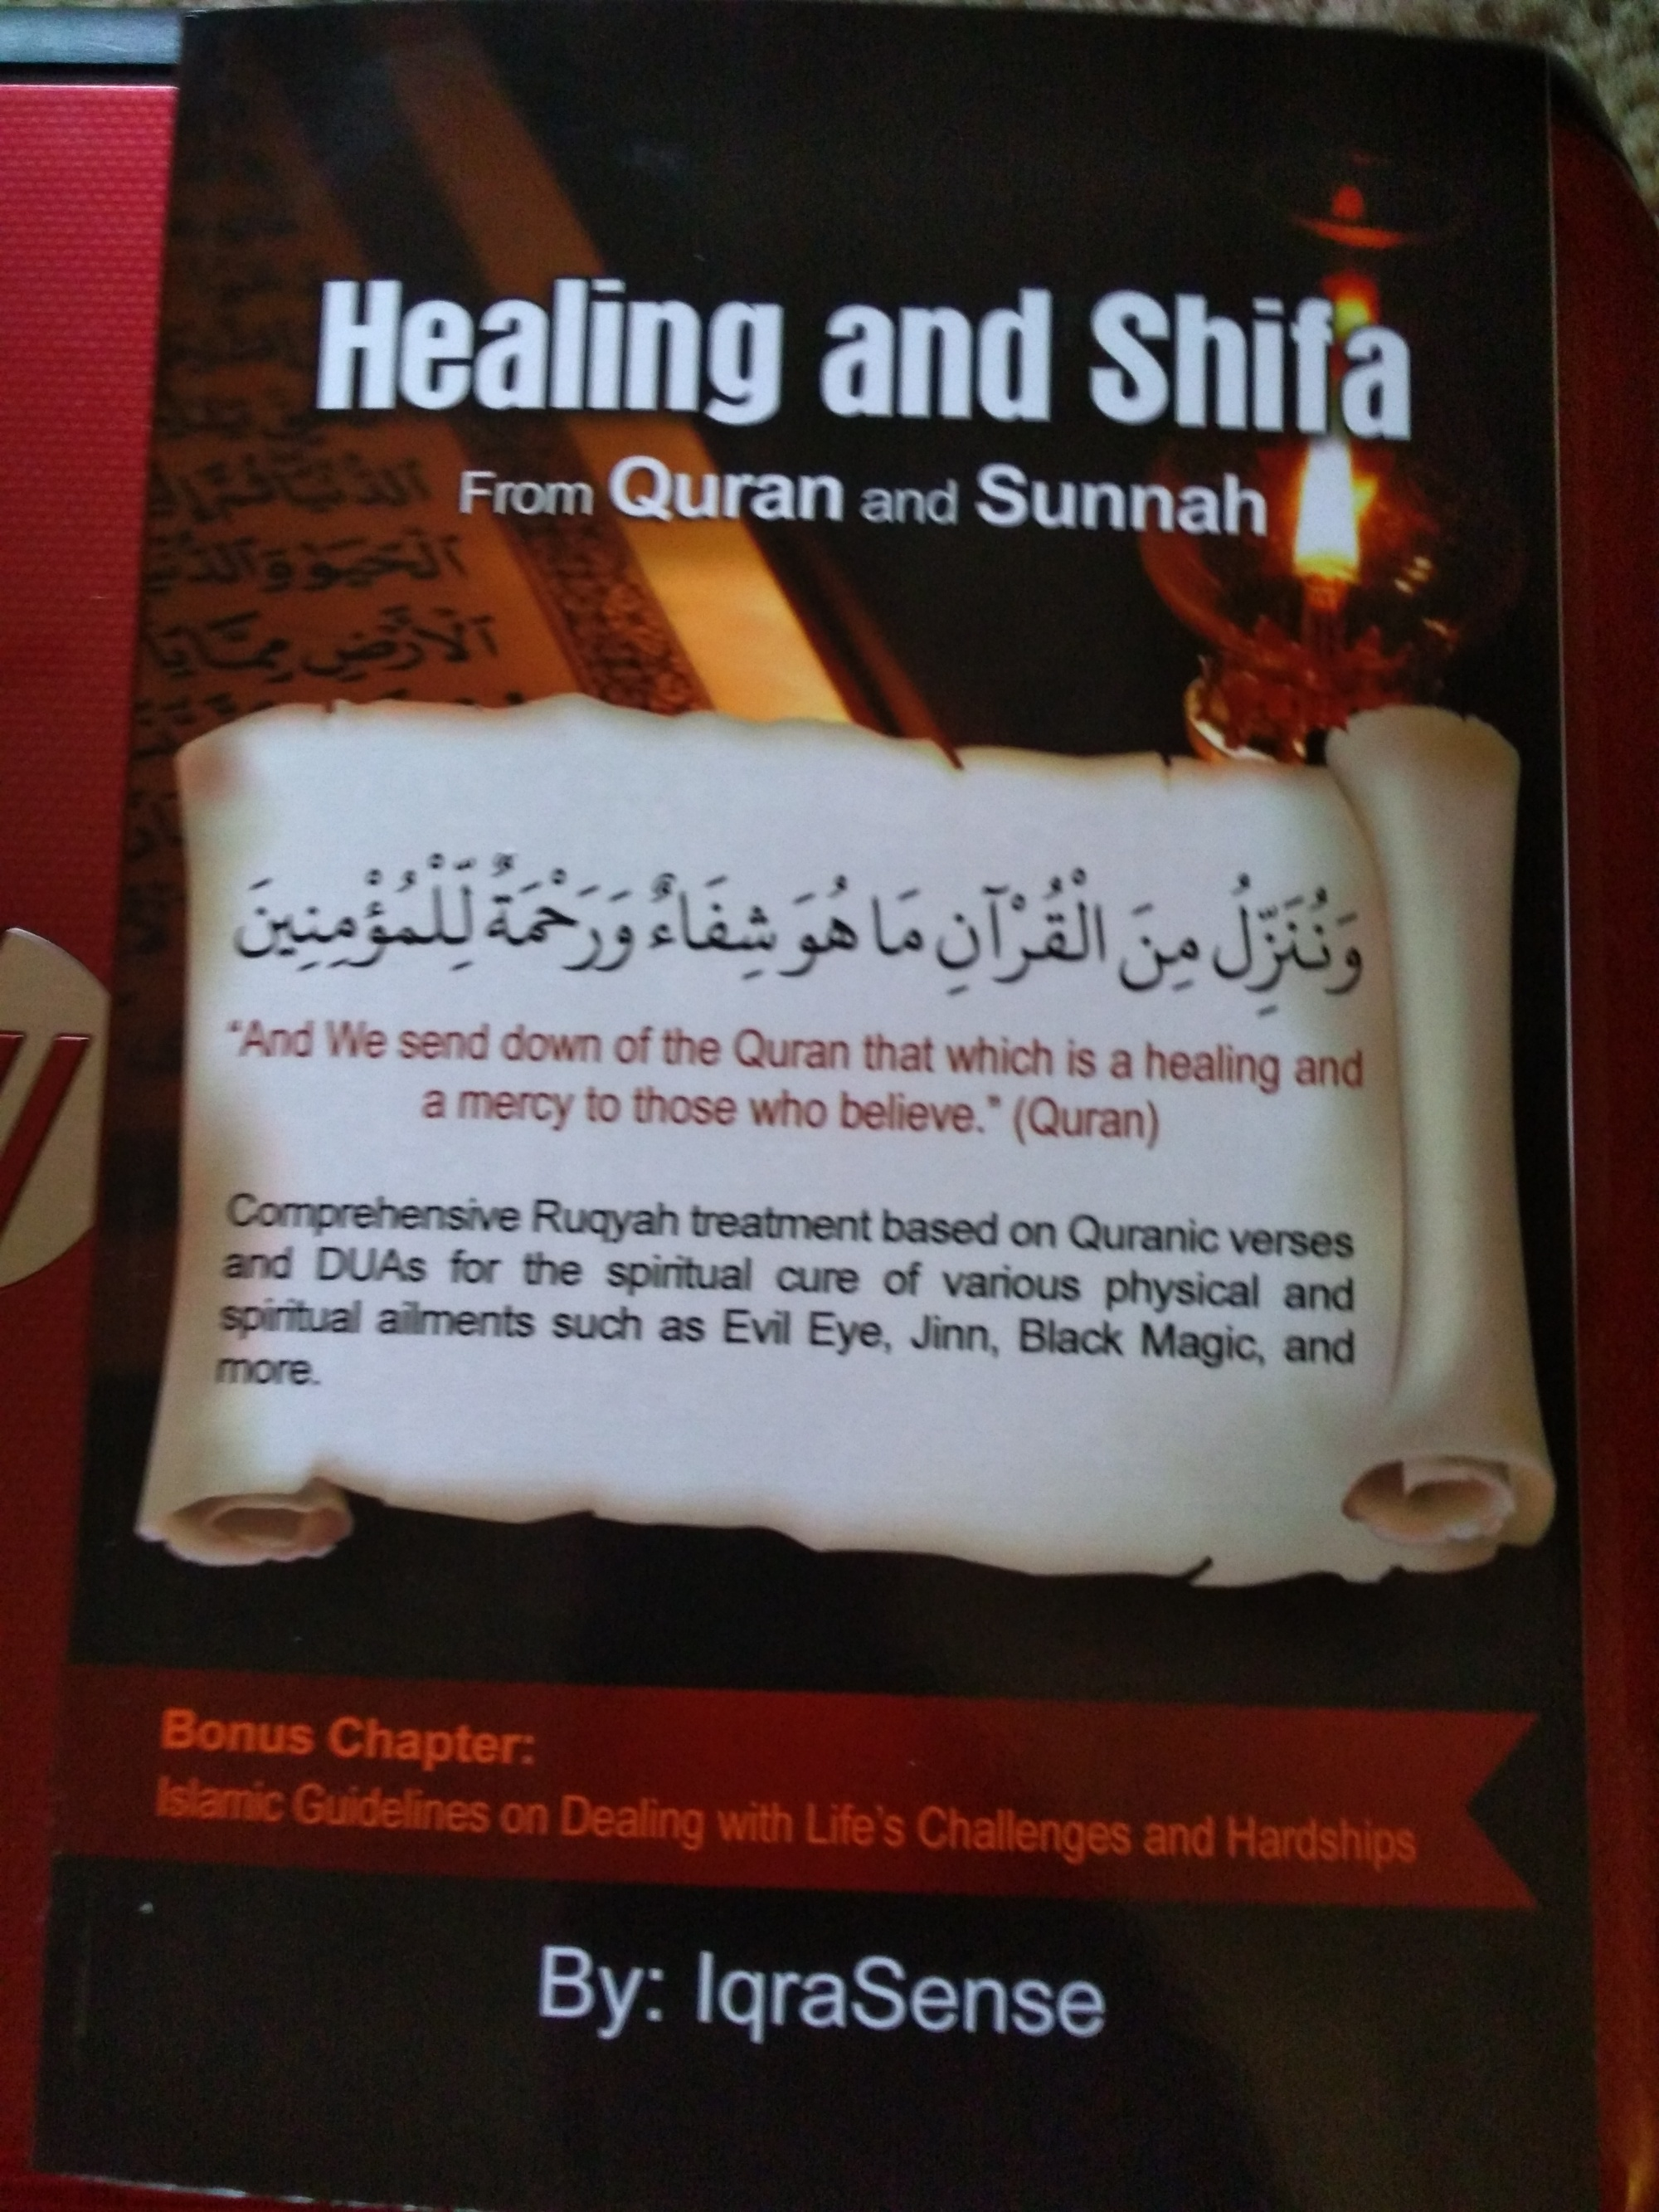 Healing and Shifa from Quran and Sunnah – Healthy Lifestyle